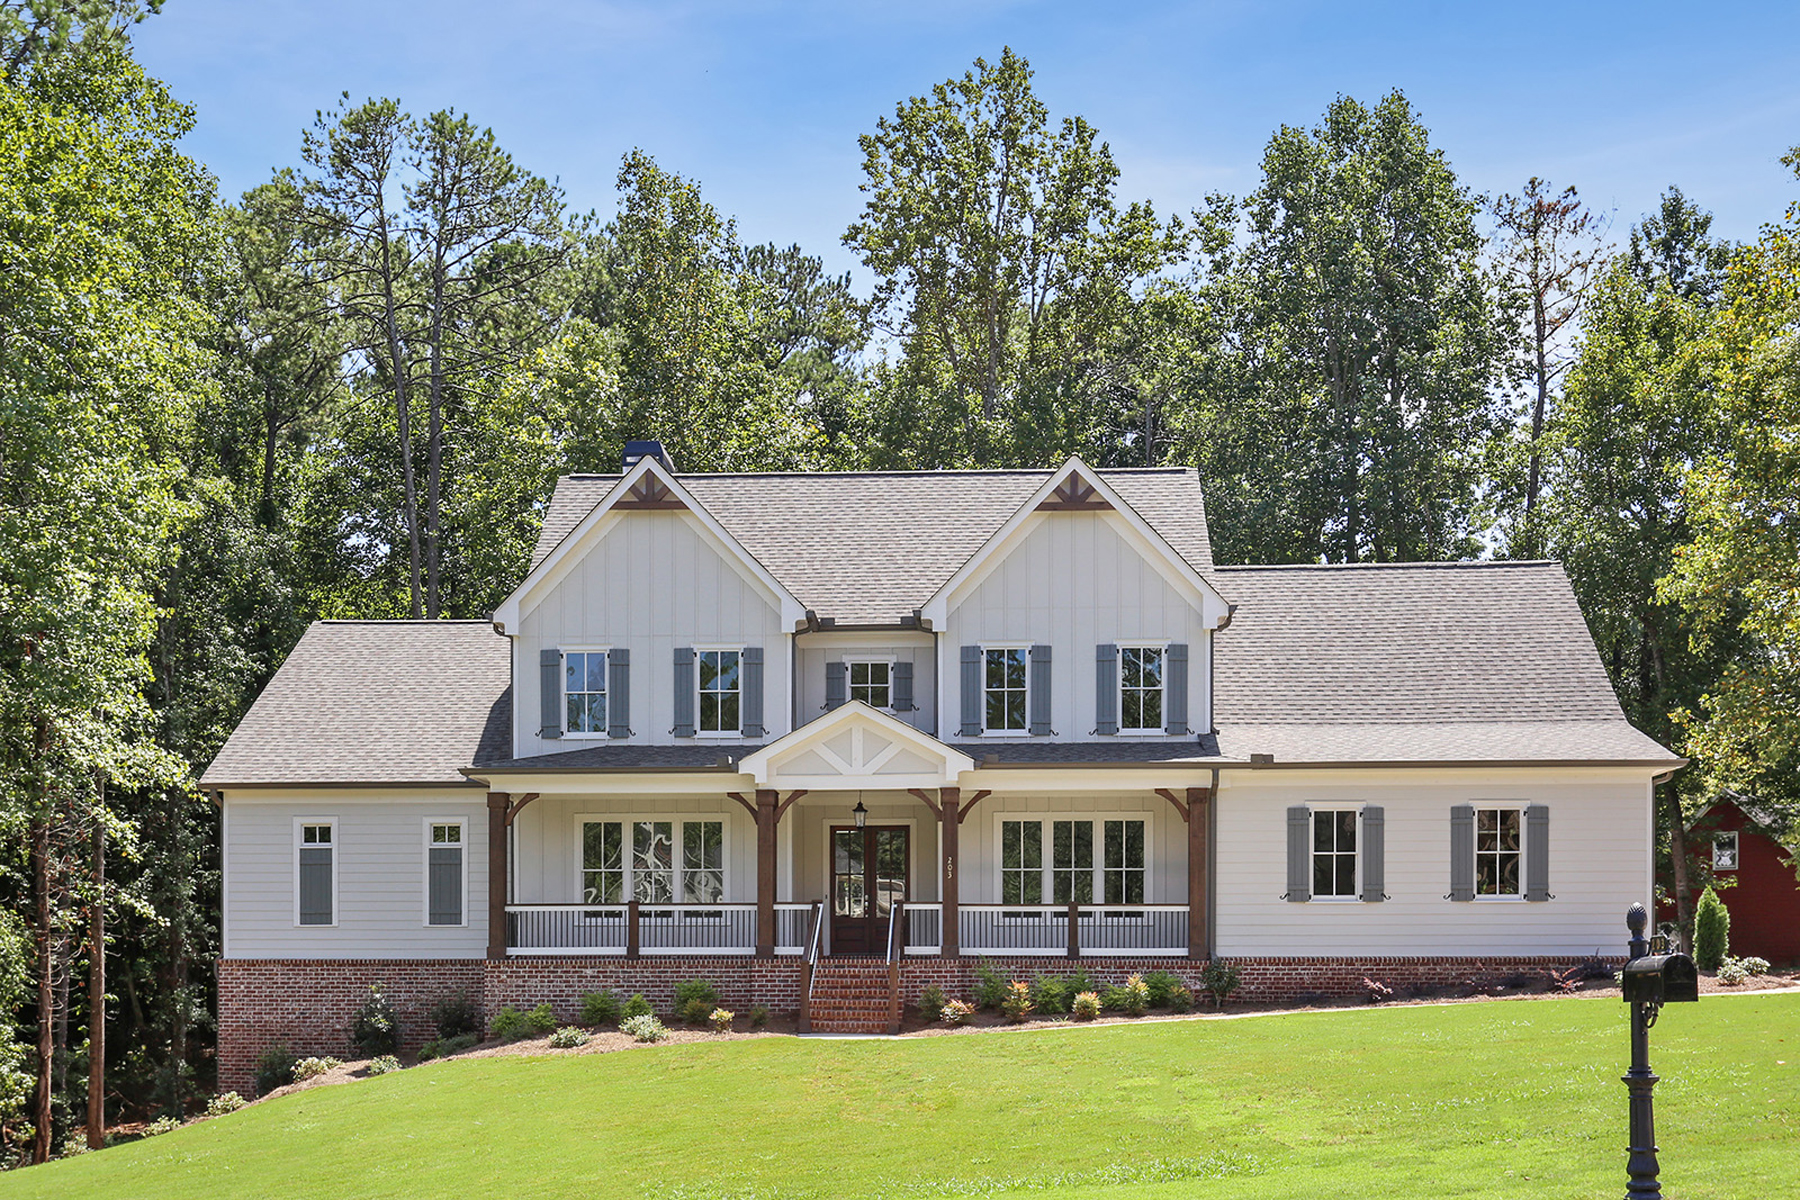 Single Family Homes for Sale at Owners on Main New Construction Woodstock Home 203 Rosewood Circle Woodstock, Georgia 30188 United States